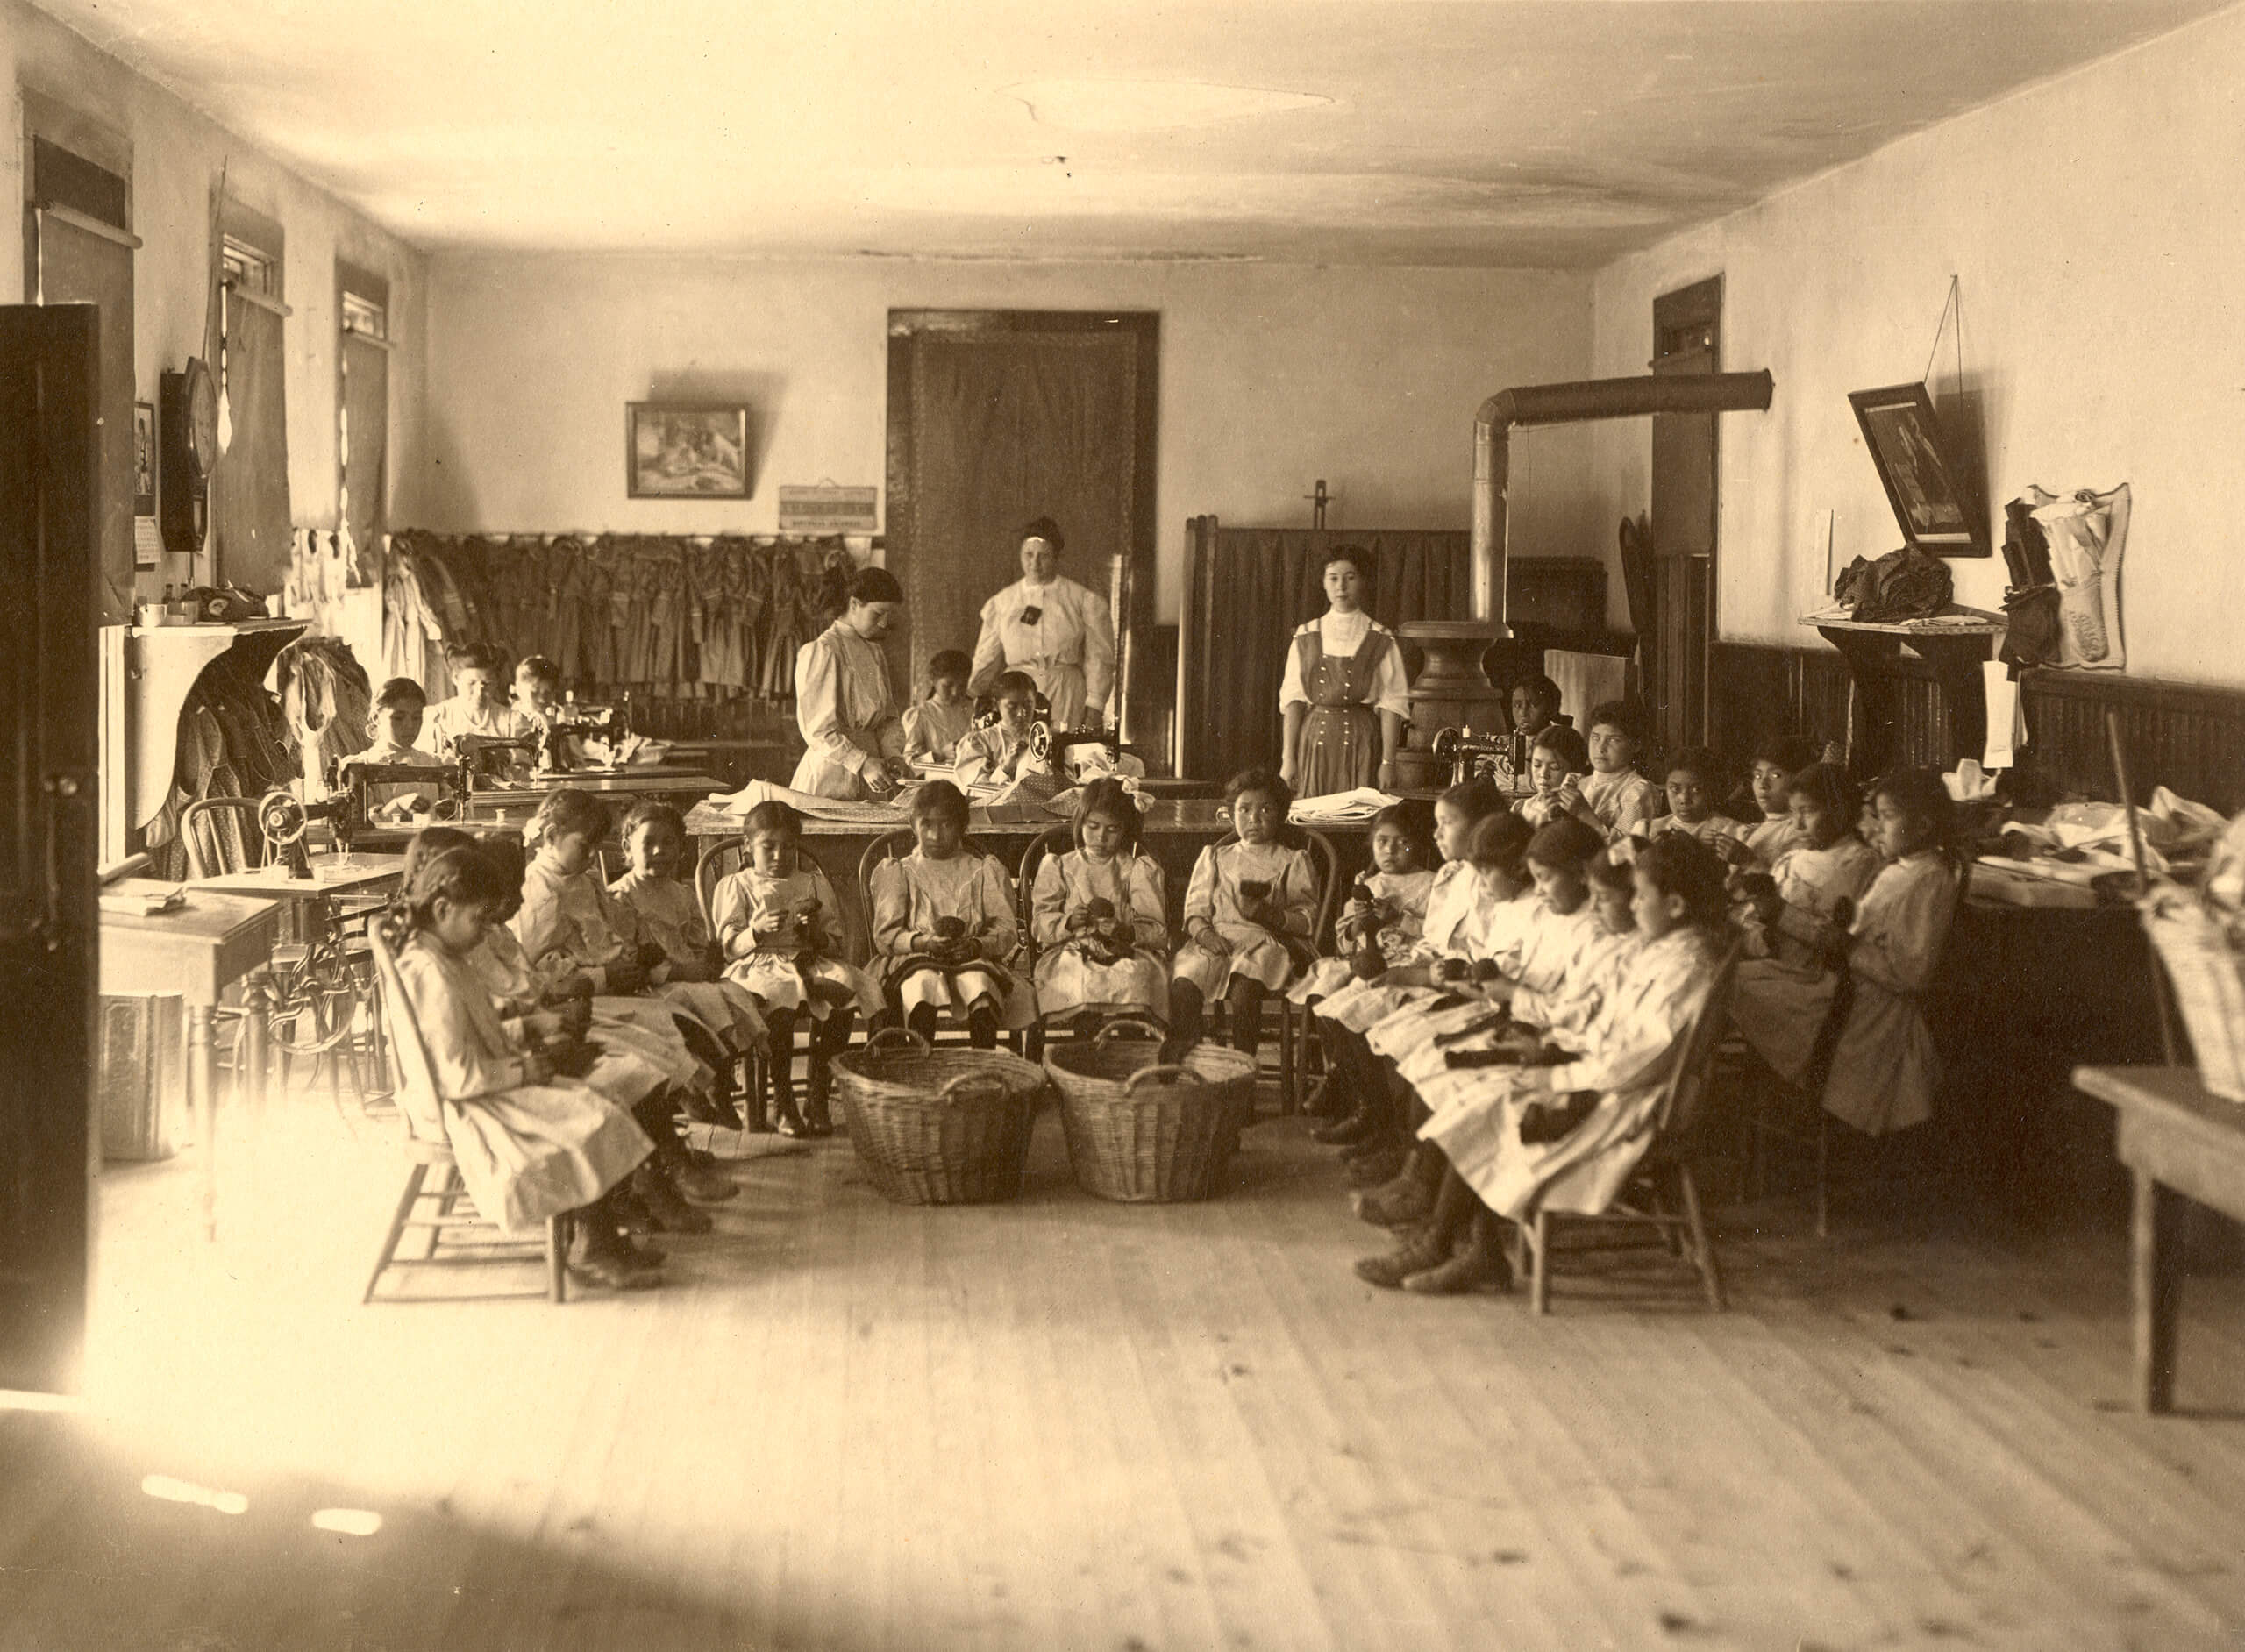 Democrats call for support services for survivors of Native American boarding schools